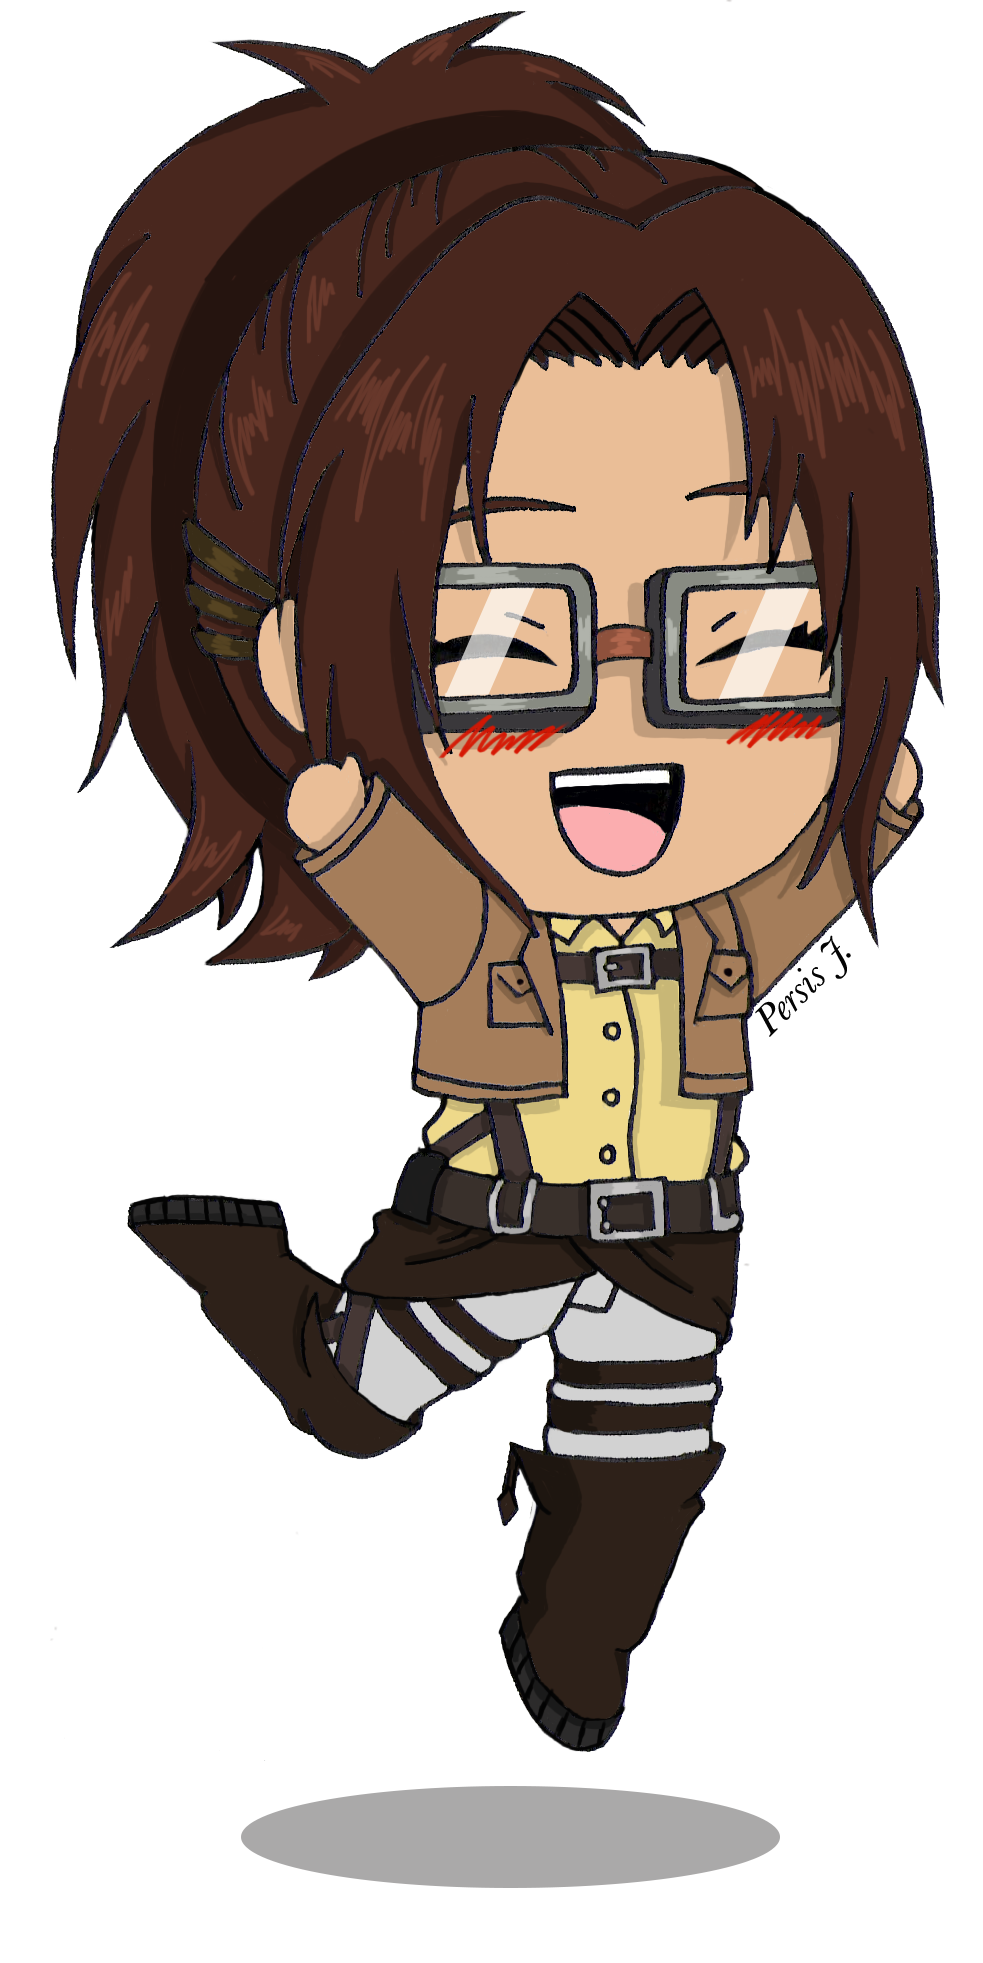 Chibi Hanji by PDJ004 on DeviantArt Chibi, Attack on